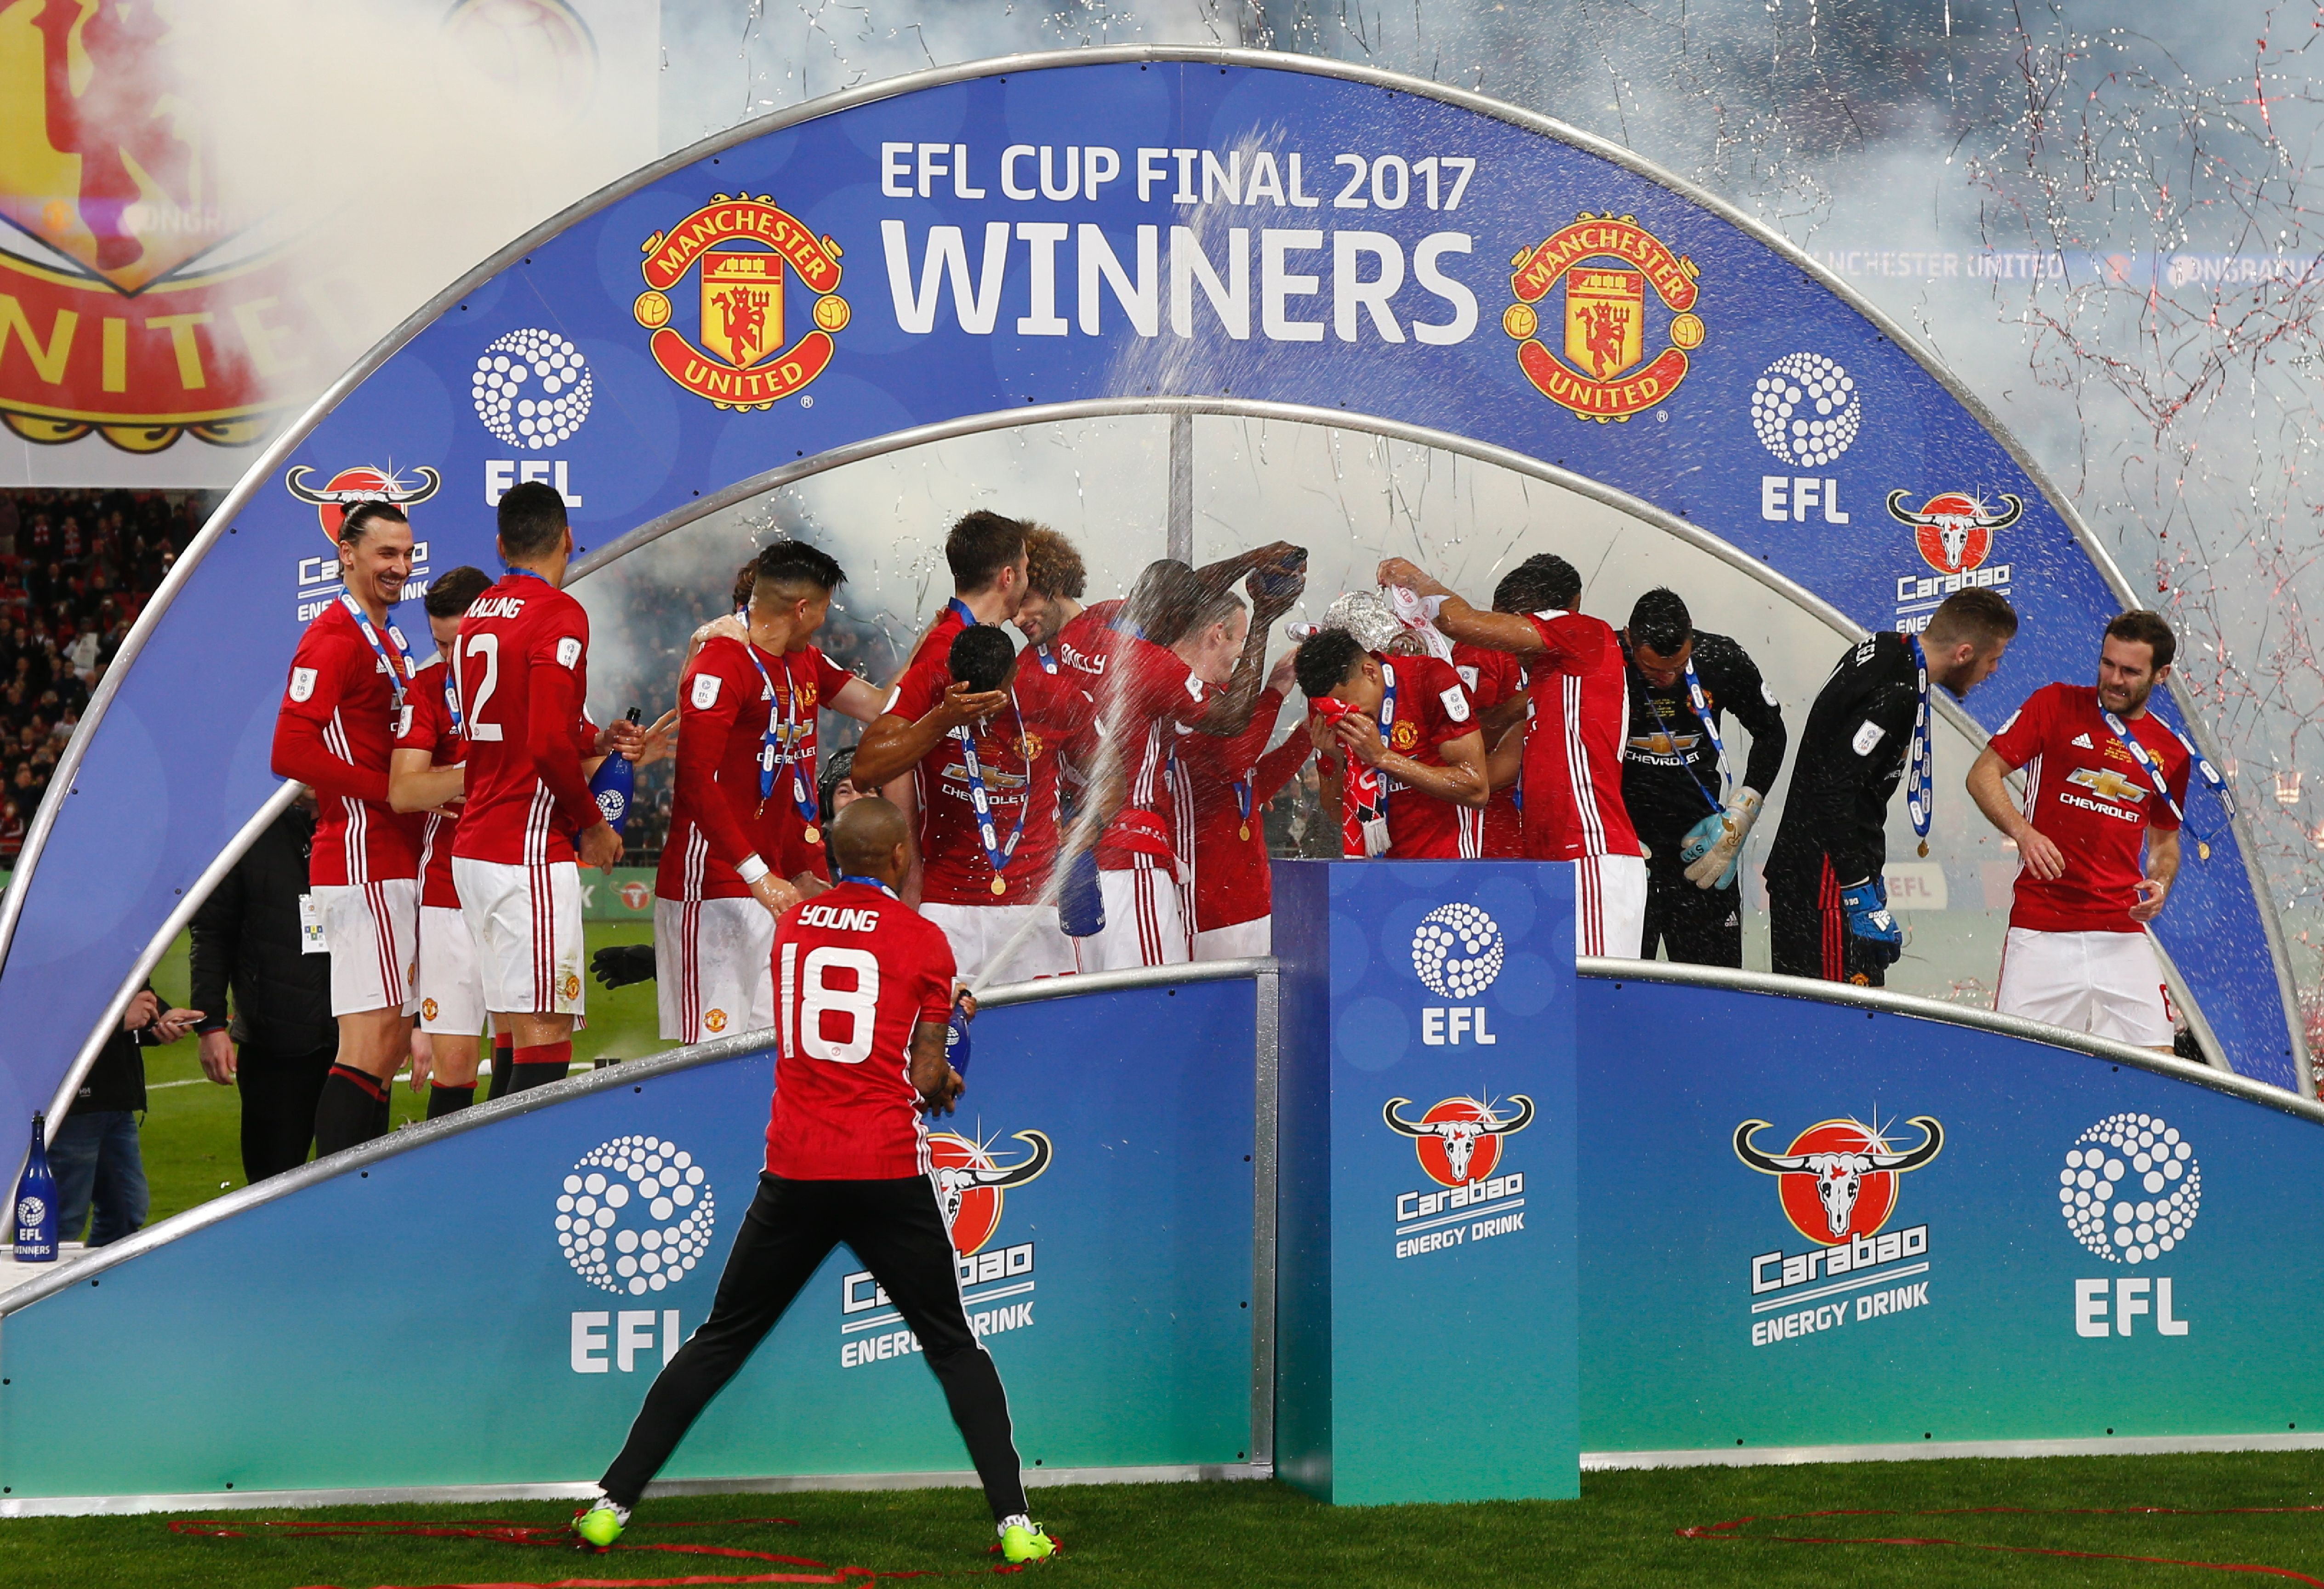 Manchester United EFL Cup Winners 2017